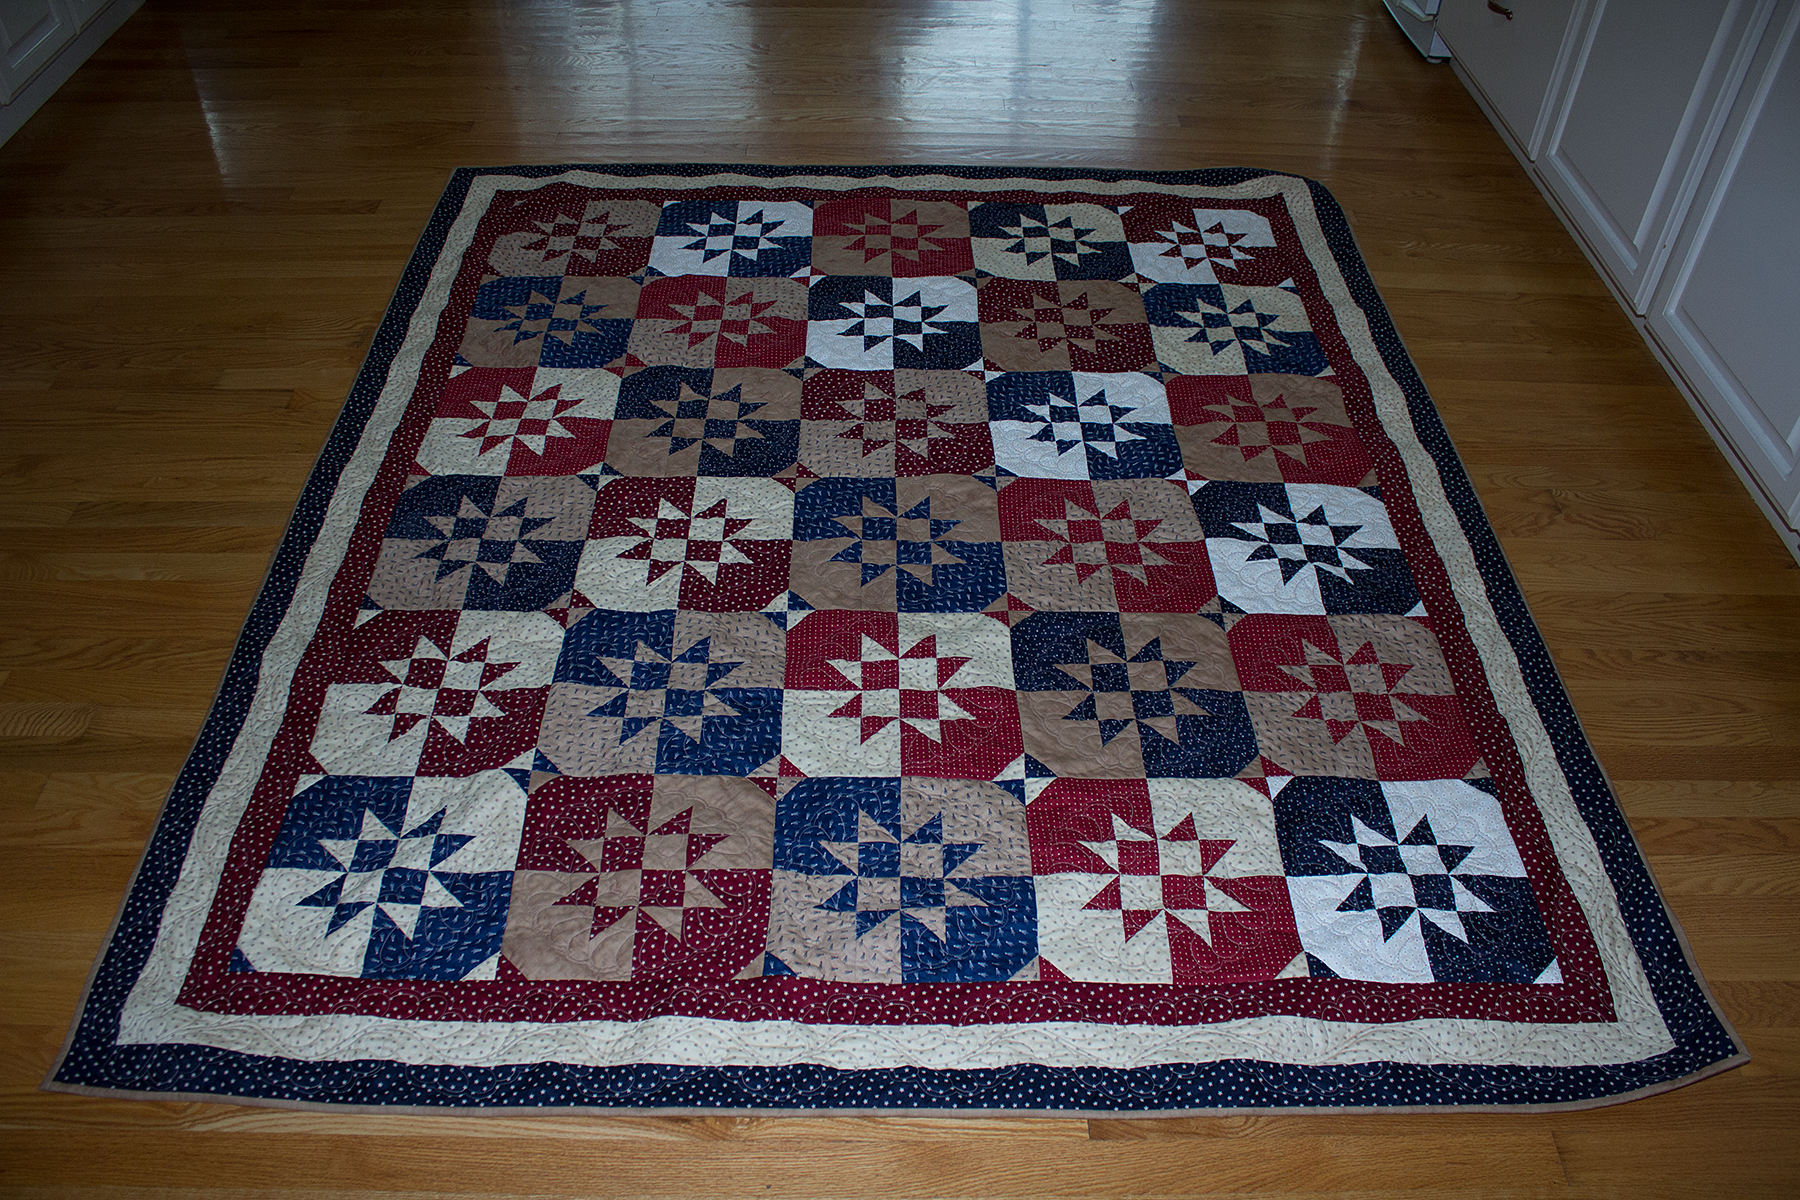 Quilt Patterns For Quilts Of Valor : Quilt of Valor Disappearing Hour Glass Hobby Stash